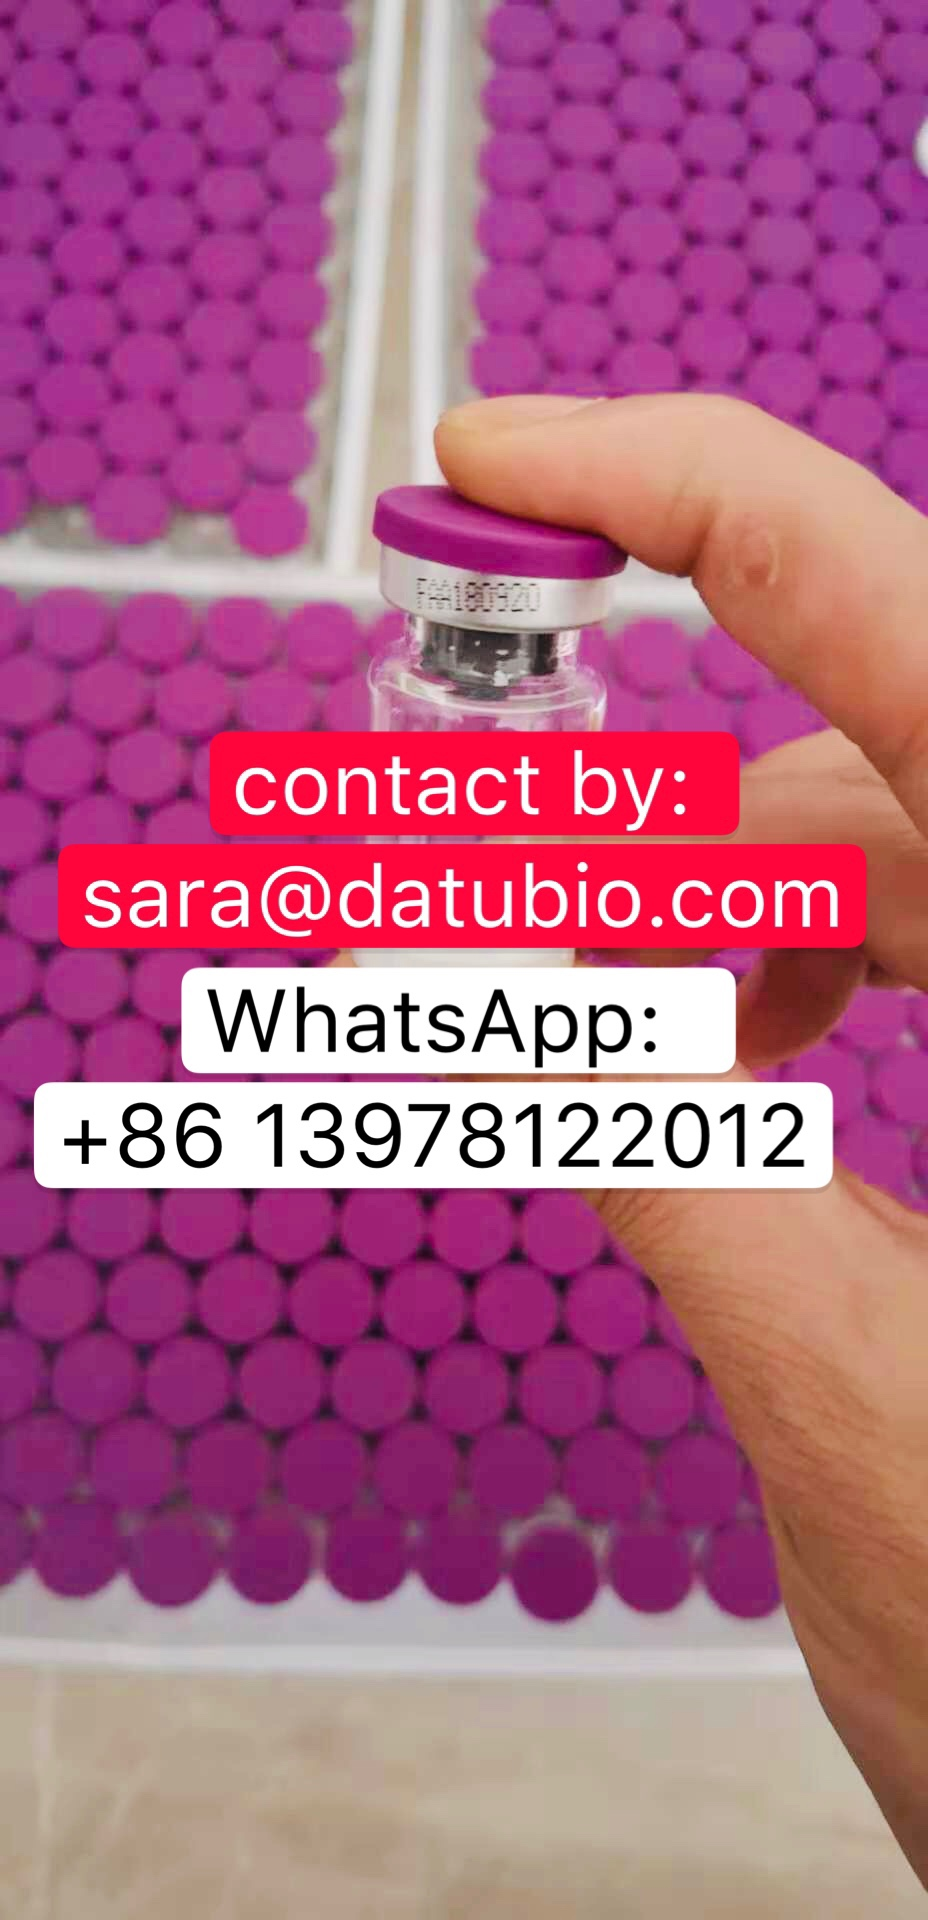 99% Purity Sermorelin Acetate Peptide GRF 1-29 Growth Hormone Releasing Hormone (GHRH) 2mg/5mg